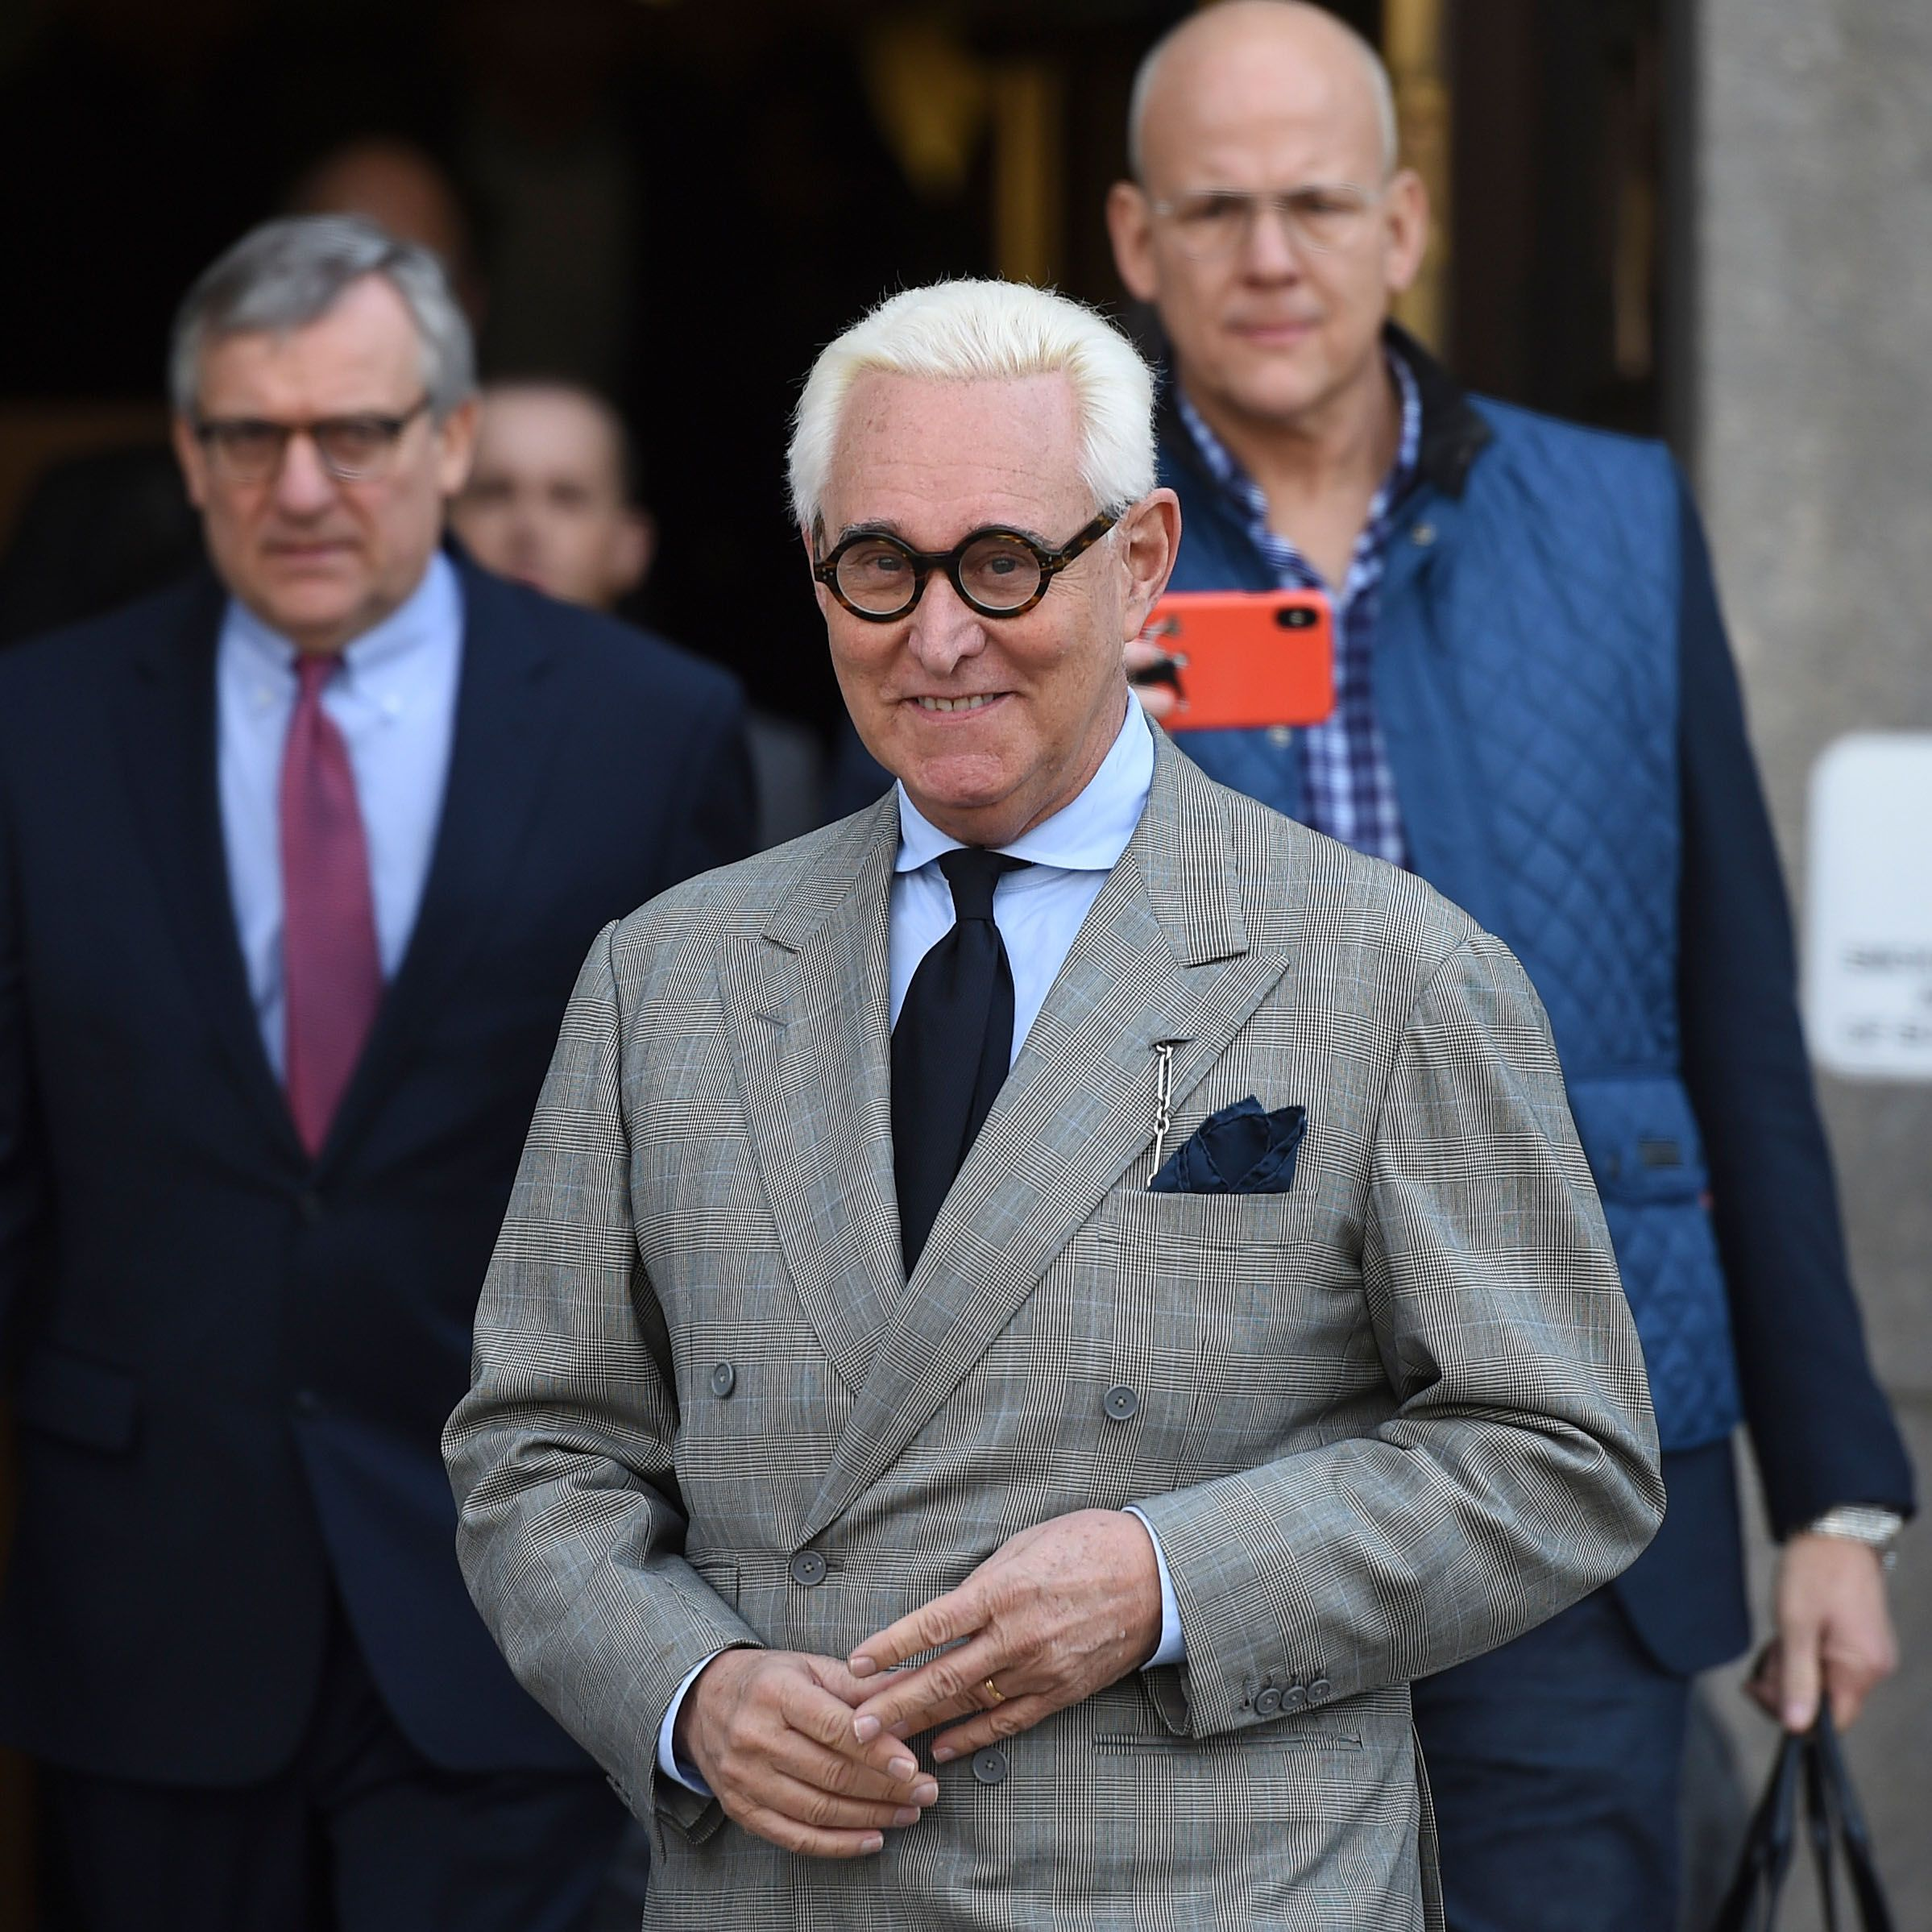 Former advisor to US President Donald Trump, Roger Stone, leaves a court hearing on March 14, 2019, in Washington DC.